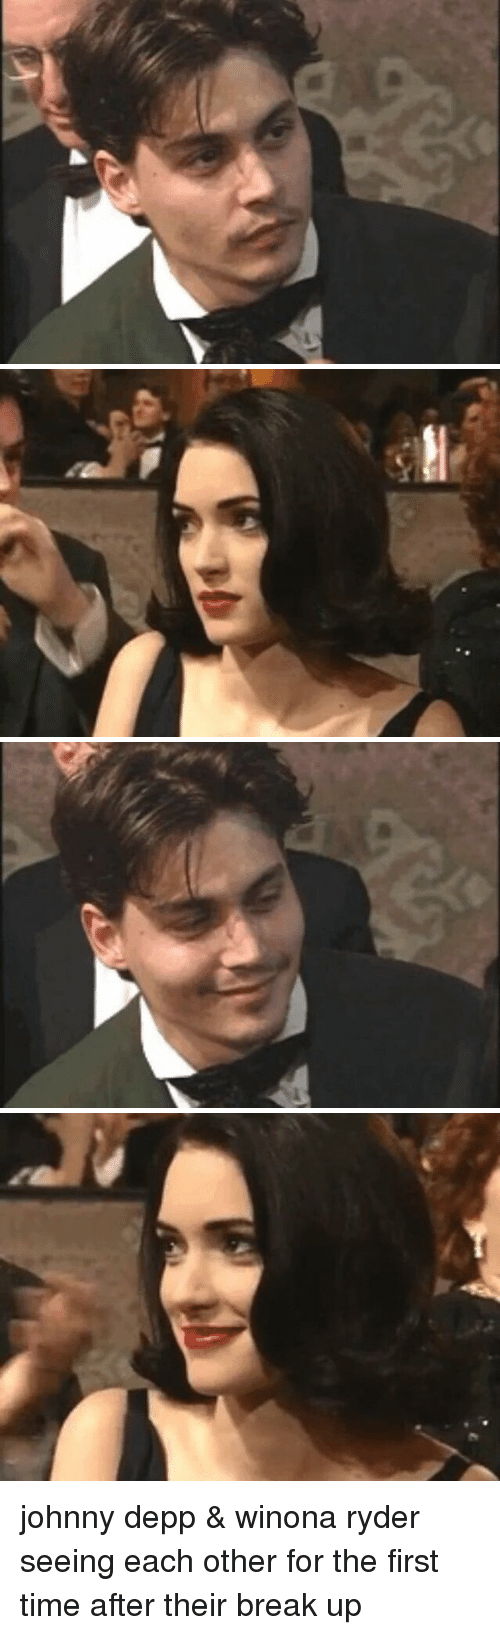 Johnny Depp, Ups, and Break: 才 johnny depp & winona ryder seeing each other for the first time after their break up